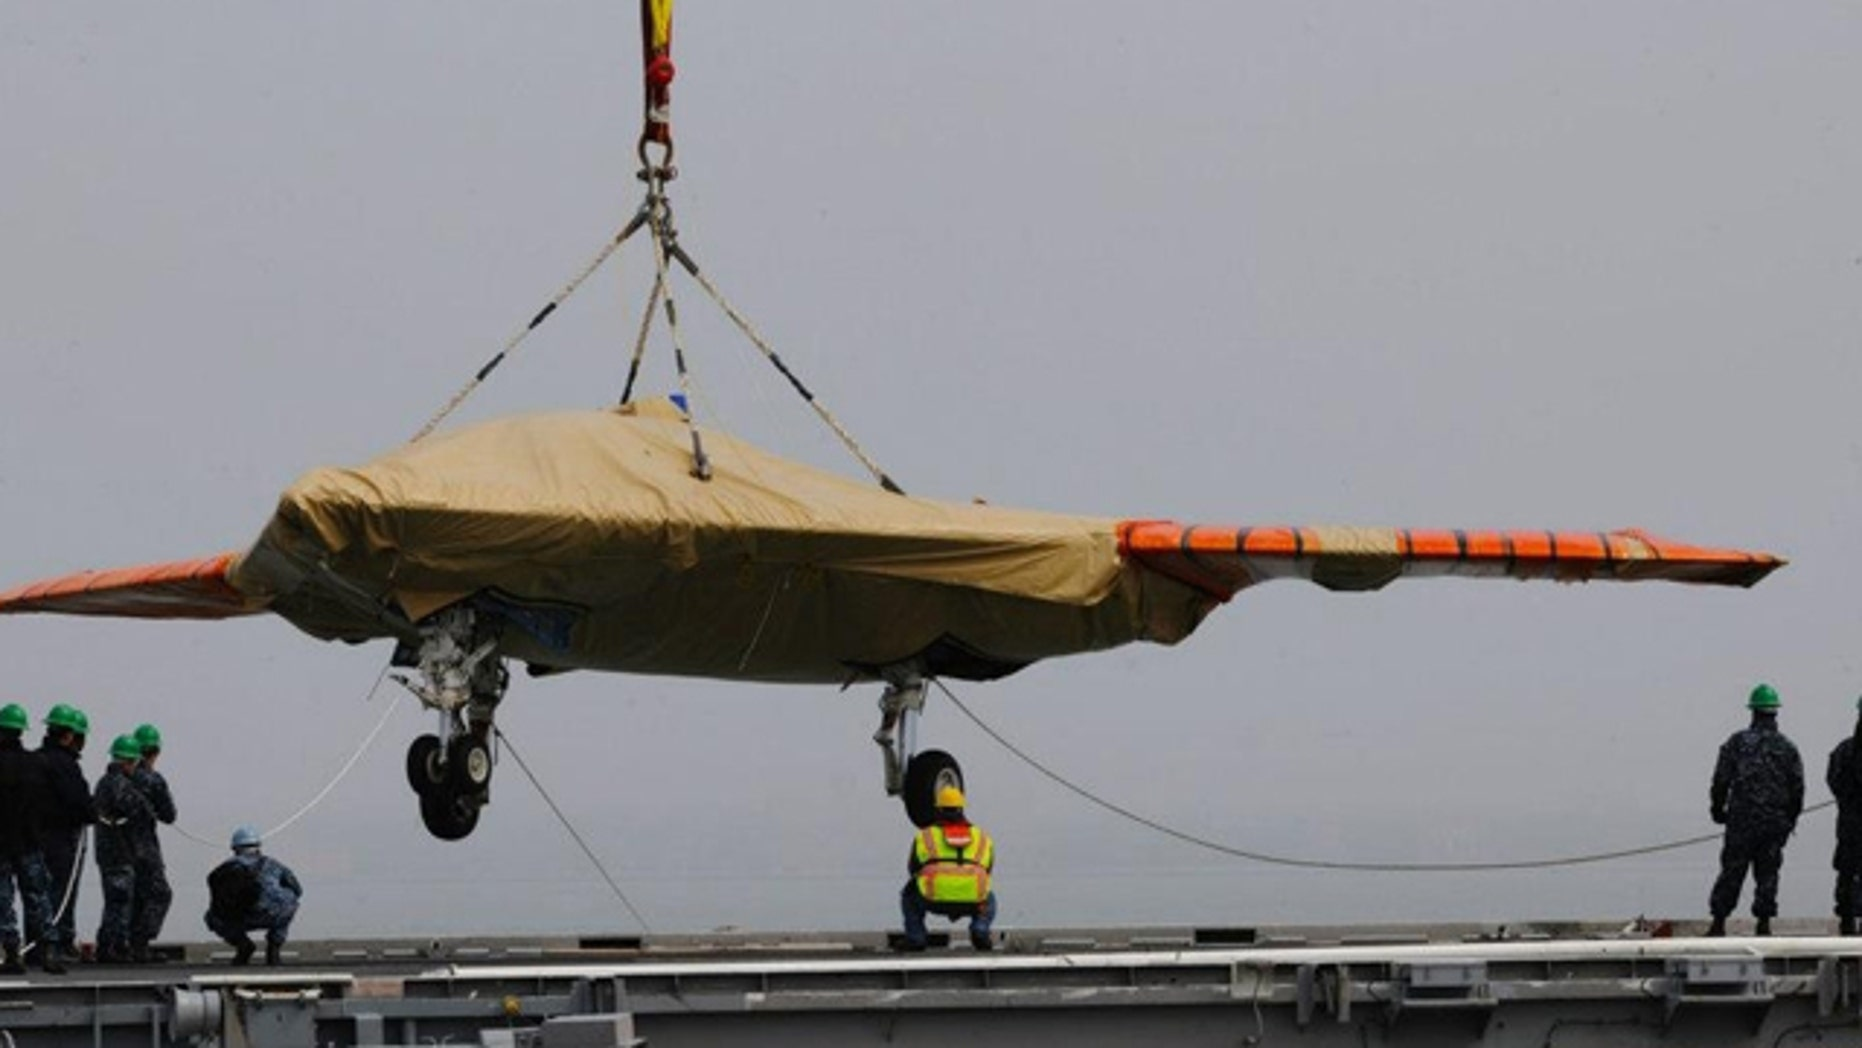 May 6, 2013: A X-47B Unmanned Combat Air System demonstrator is loaded onto the flight deck of the aircraft carrier USS George H.W. Bush.